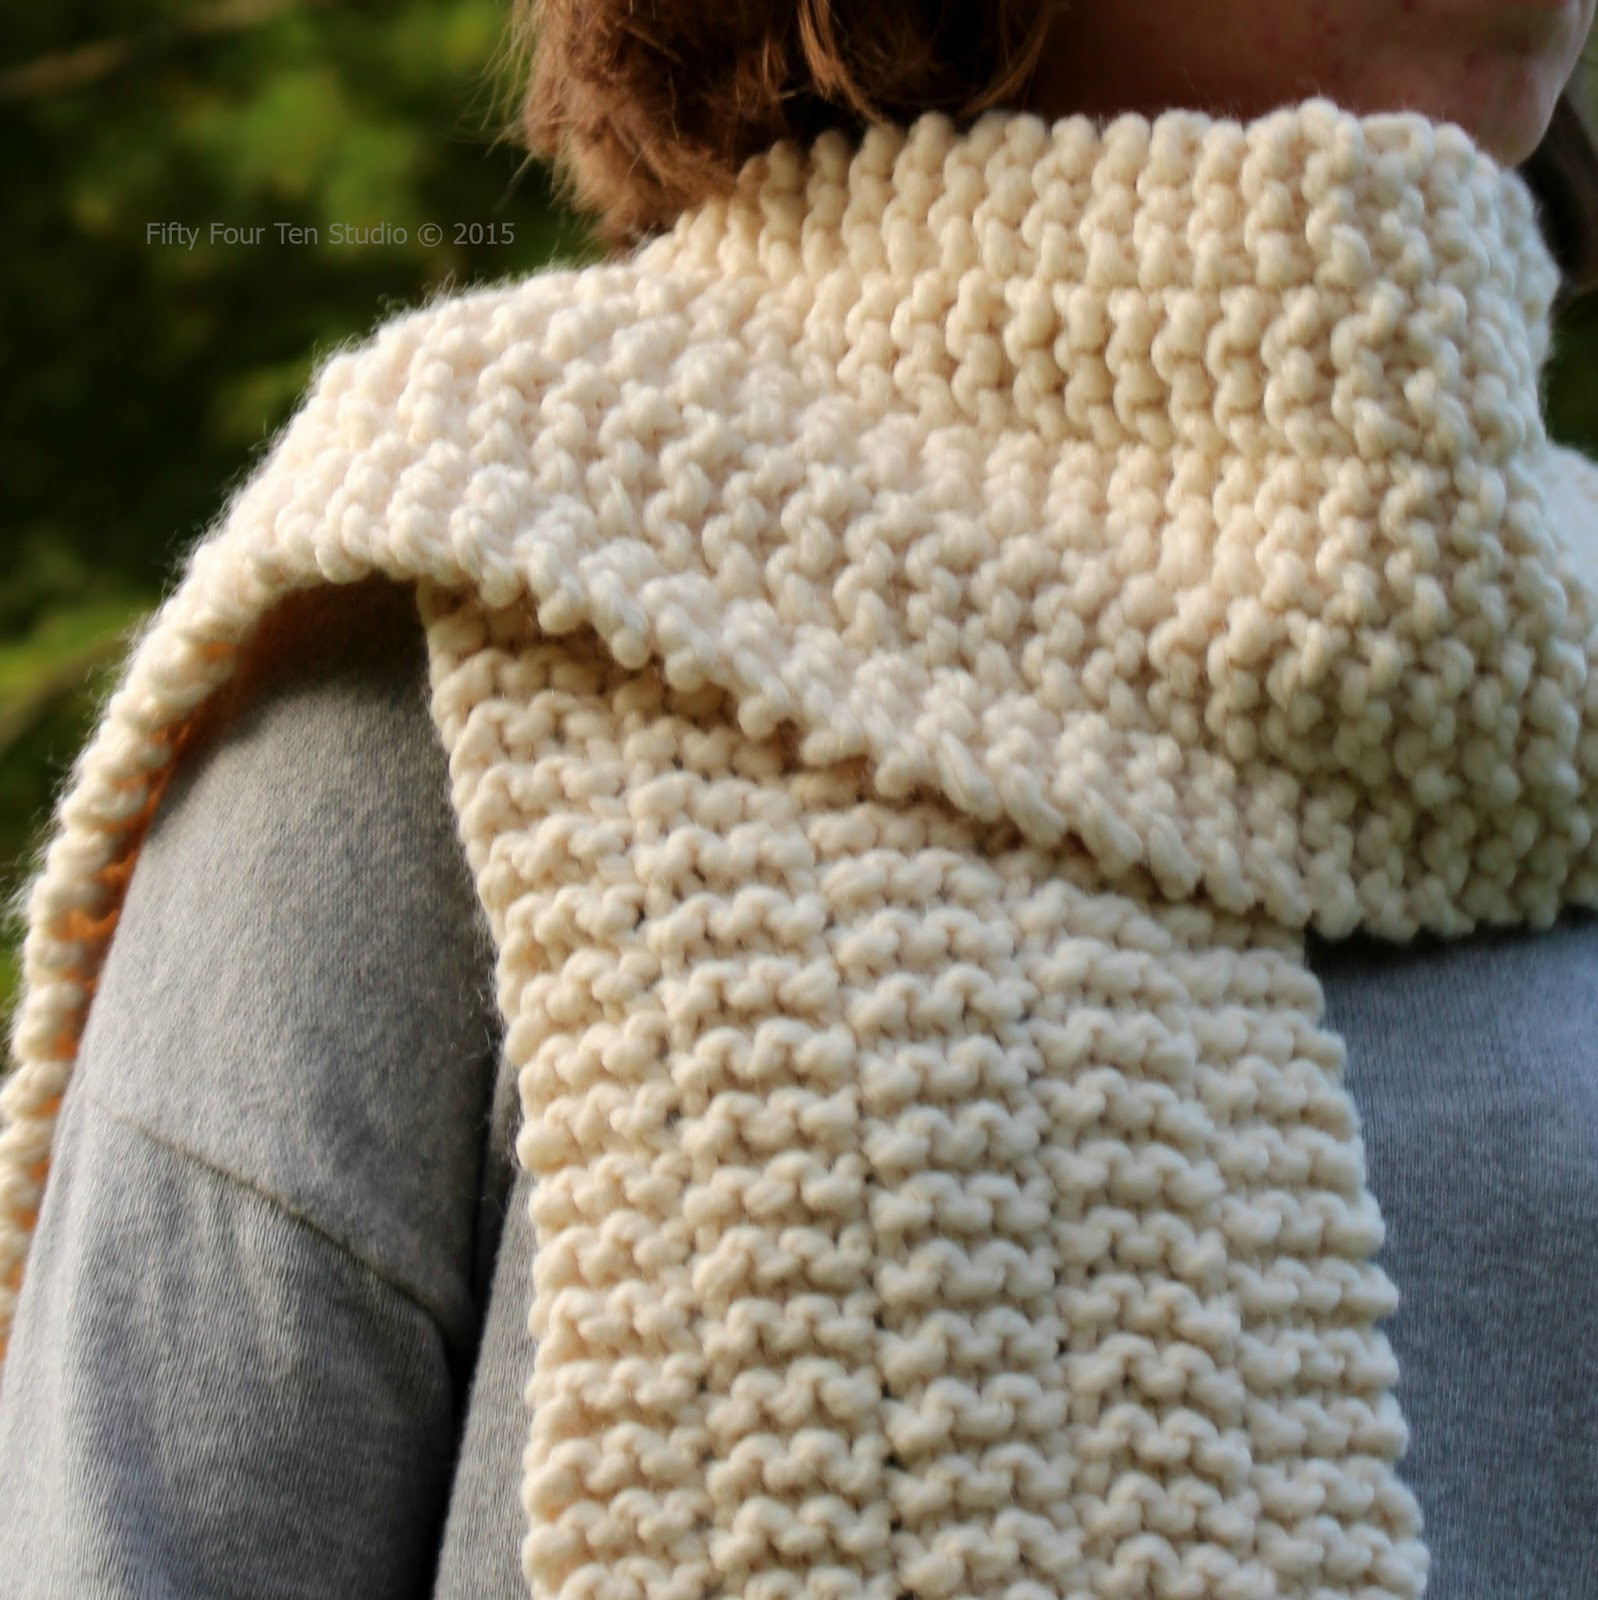 Easy Knitting Patterns Best Of Fifty Four Ten Studio New Easy Scarf Knitting Pattern Of Superb 44 Ideas Easy Knitting Patterns